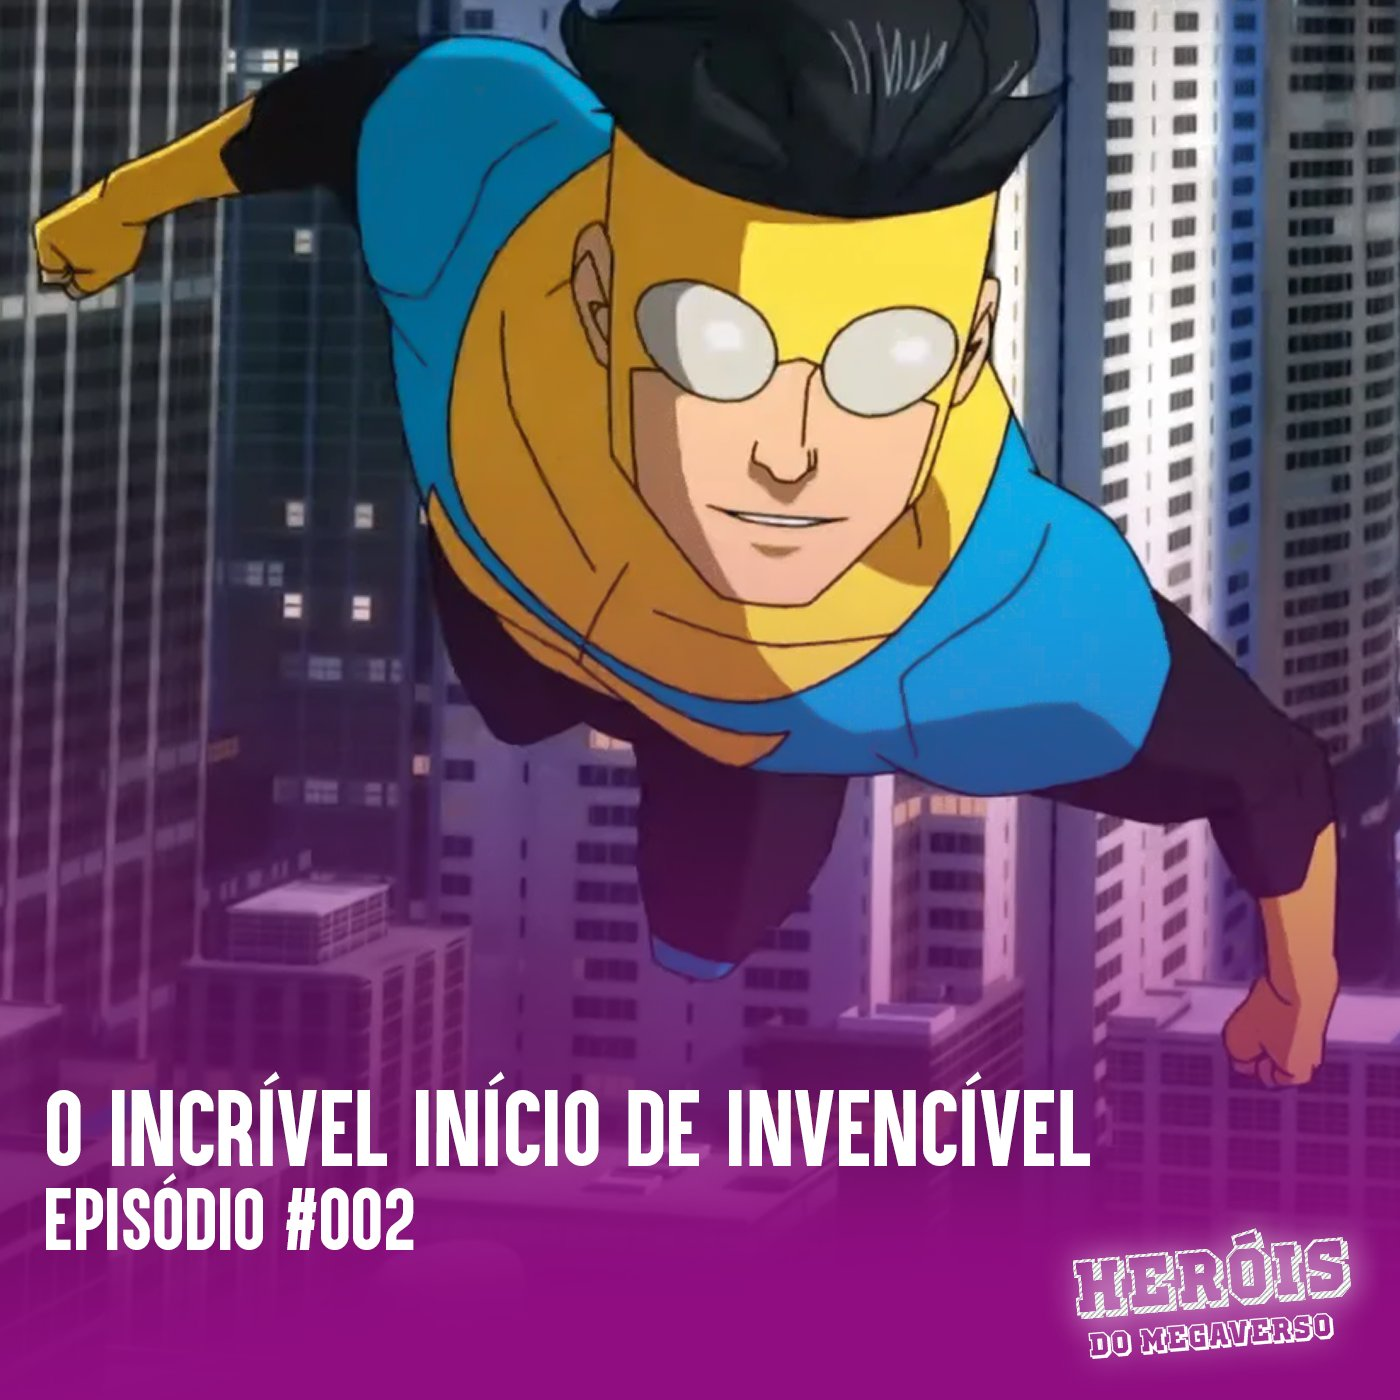 PODCAST: HERÓIS DO MEGAVERSO